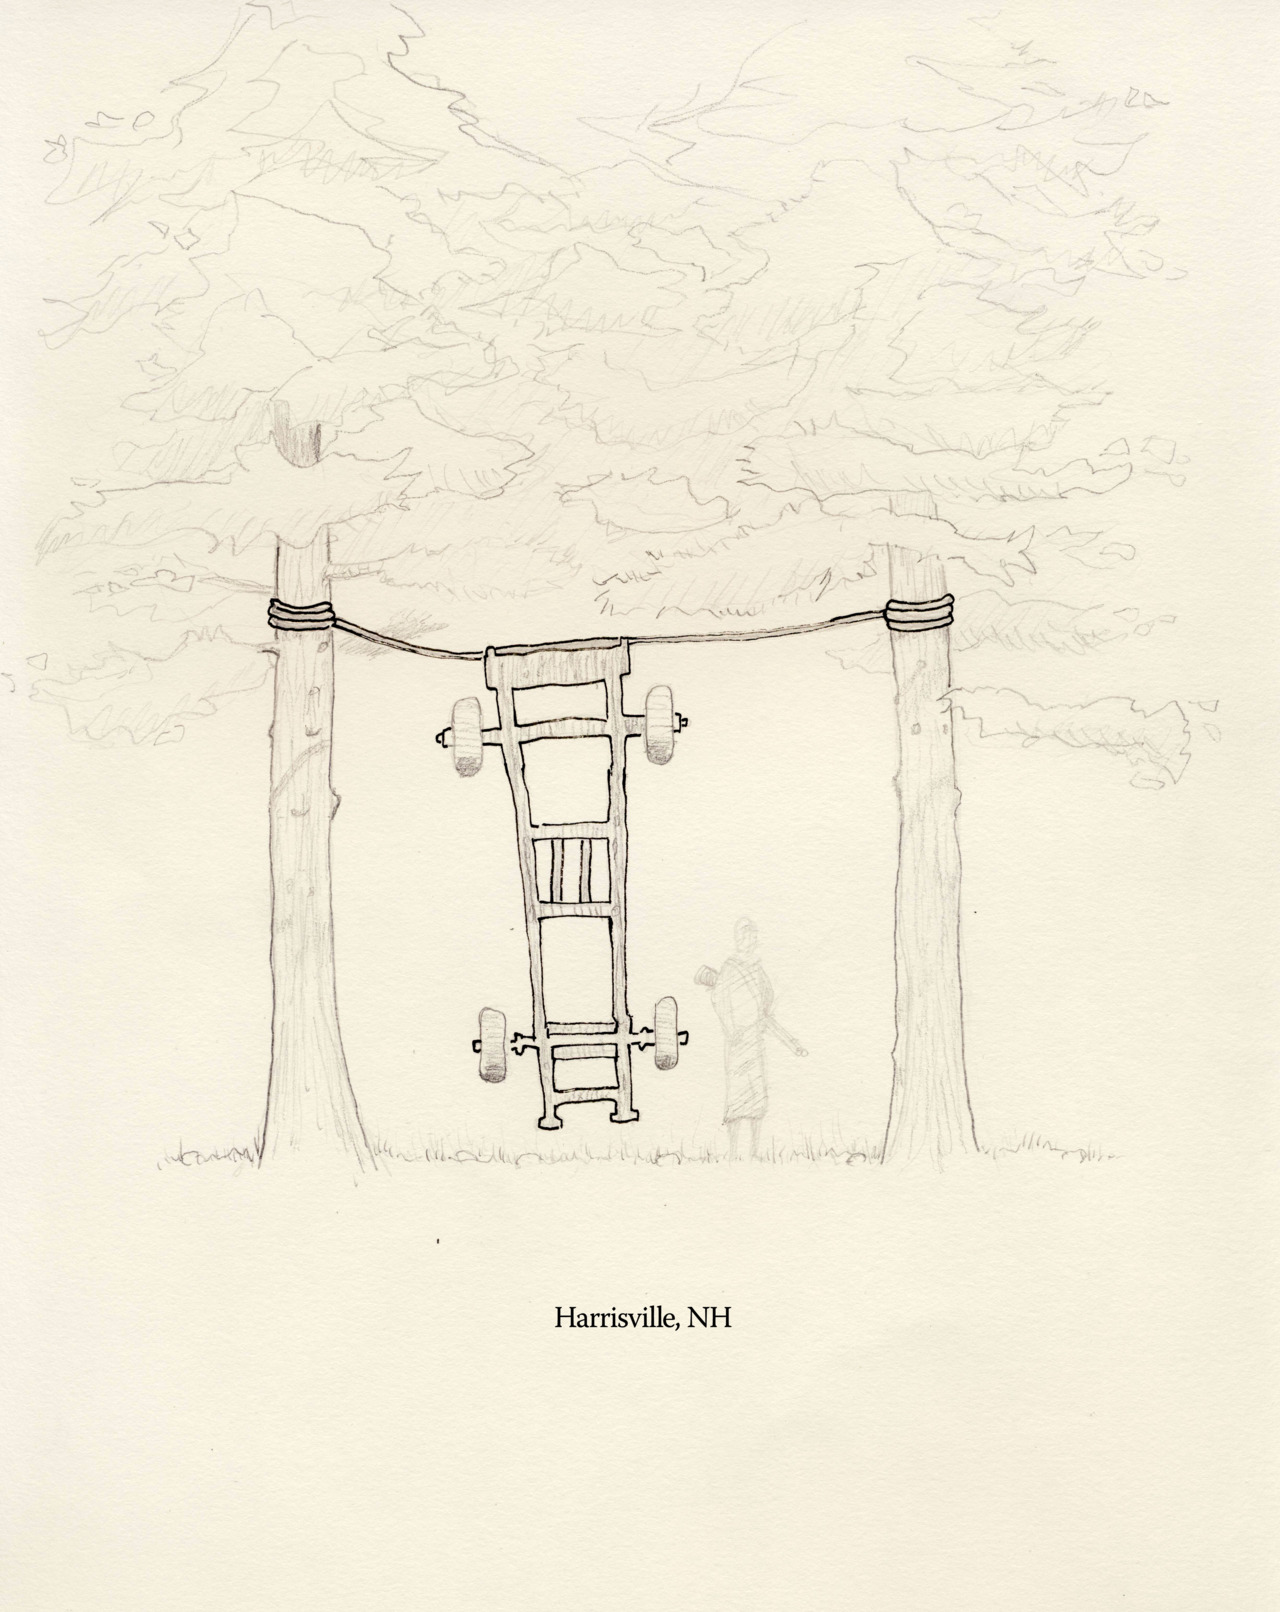 """Bagged a Skidder"" Installation Proposal Graphite, colored pencil, ink on Archers paper 8.5 x 11"" Deep in the woods, along Bobolink Farm's old logging road lies the skeletal remains of a skidder. The forest, clear cut the year before the '38 hurricane, now stands tall among mossy stumps, stone fences and the rusty chassis of a logging truck. The third-growth forest has come out on top and in the end, bagged itself a skidder."